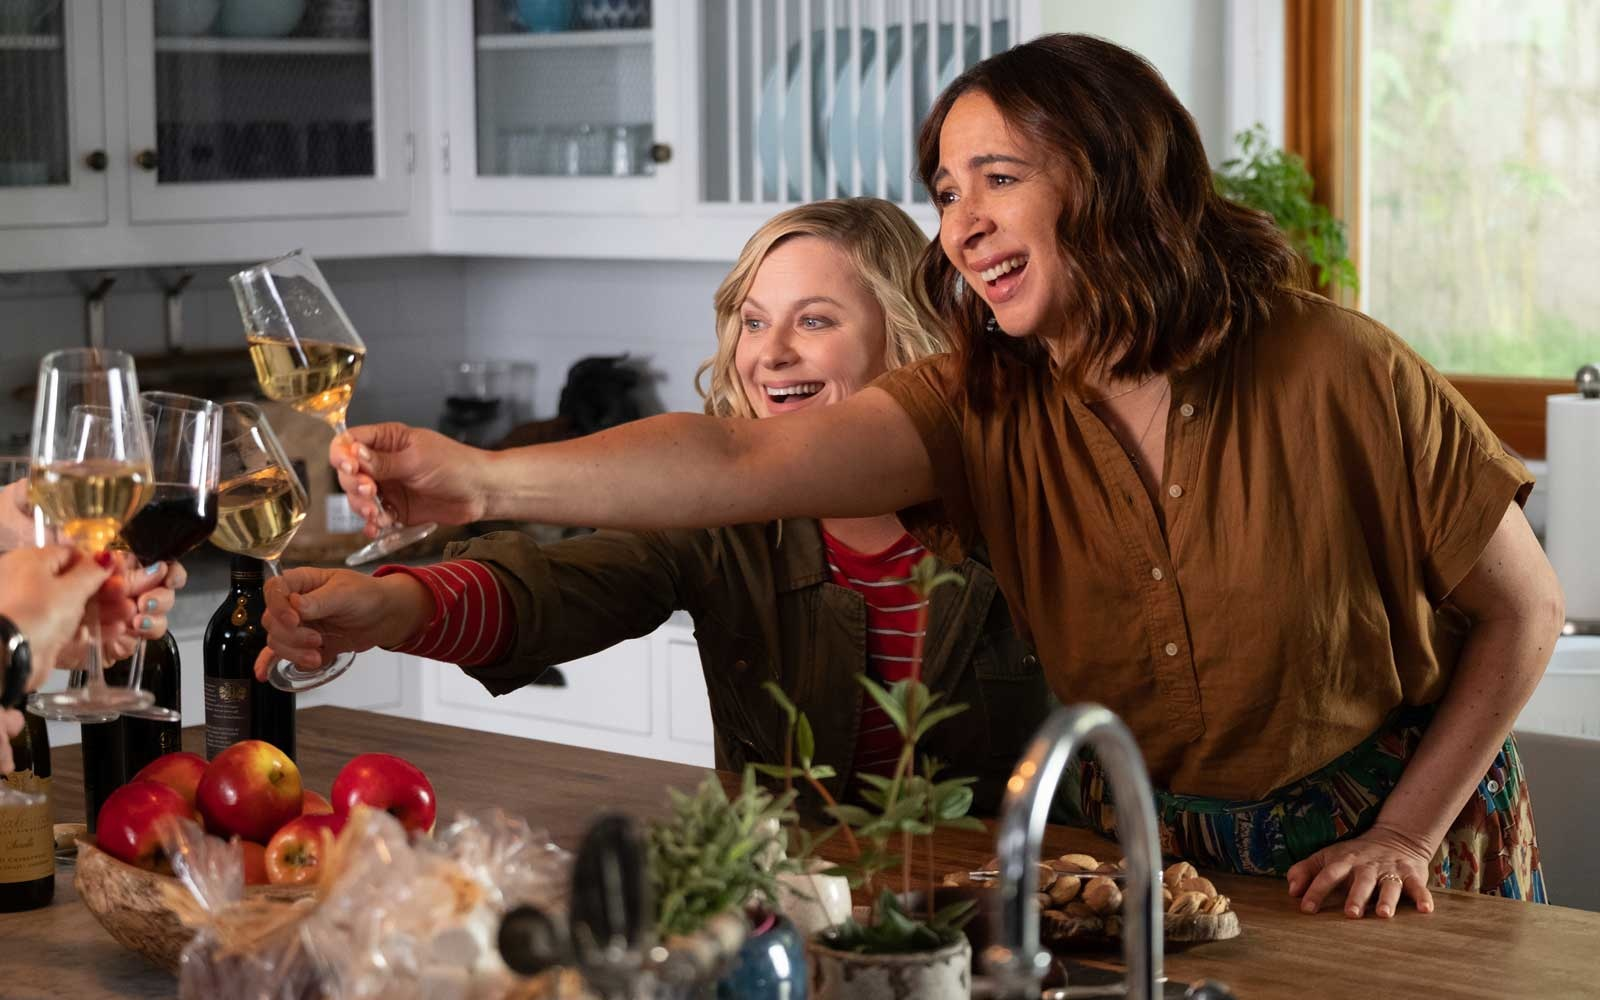 Netflix's 'Wine Country' Trailer With Amy Poehler, Tina Fey